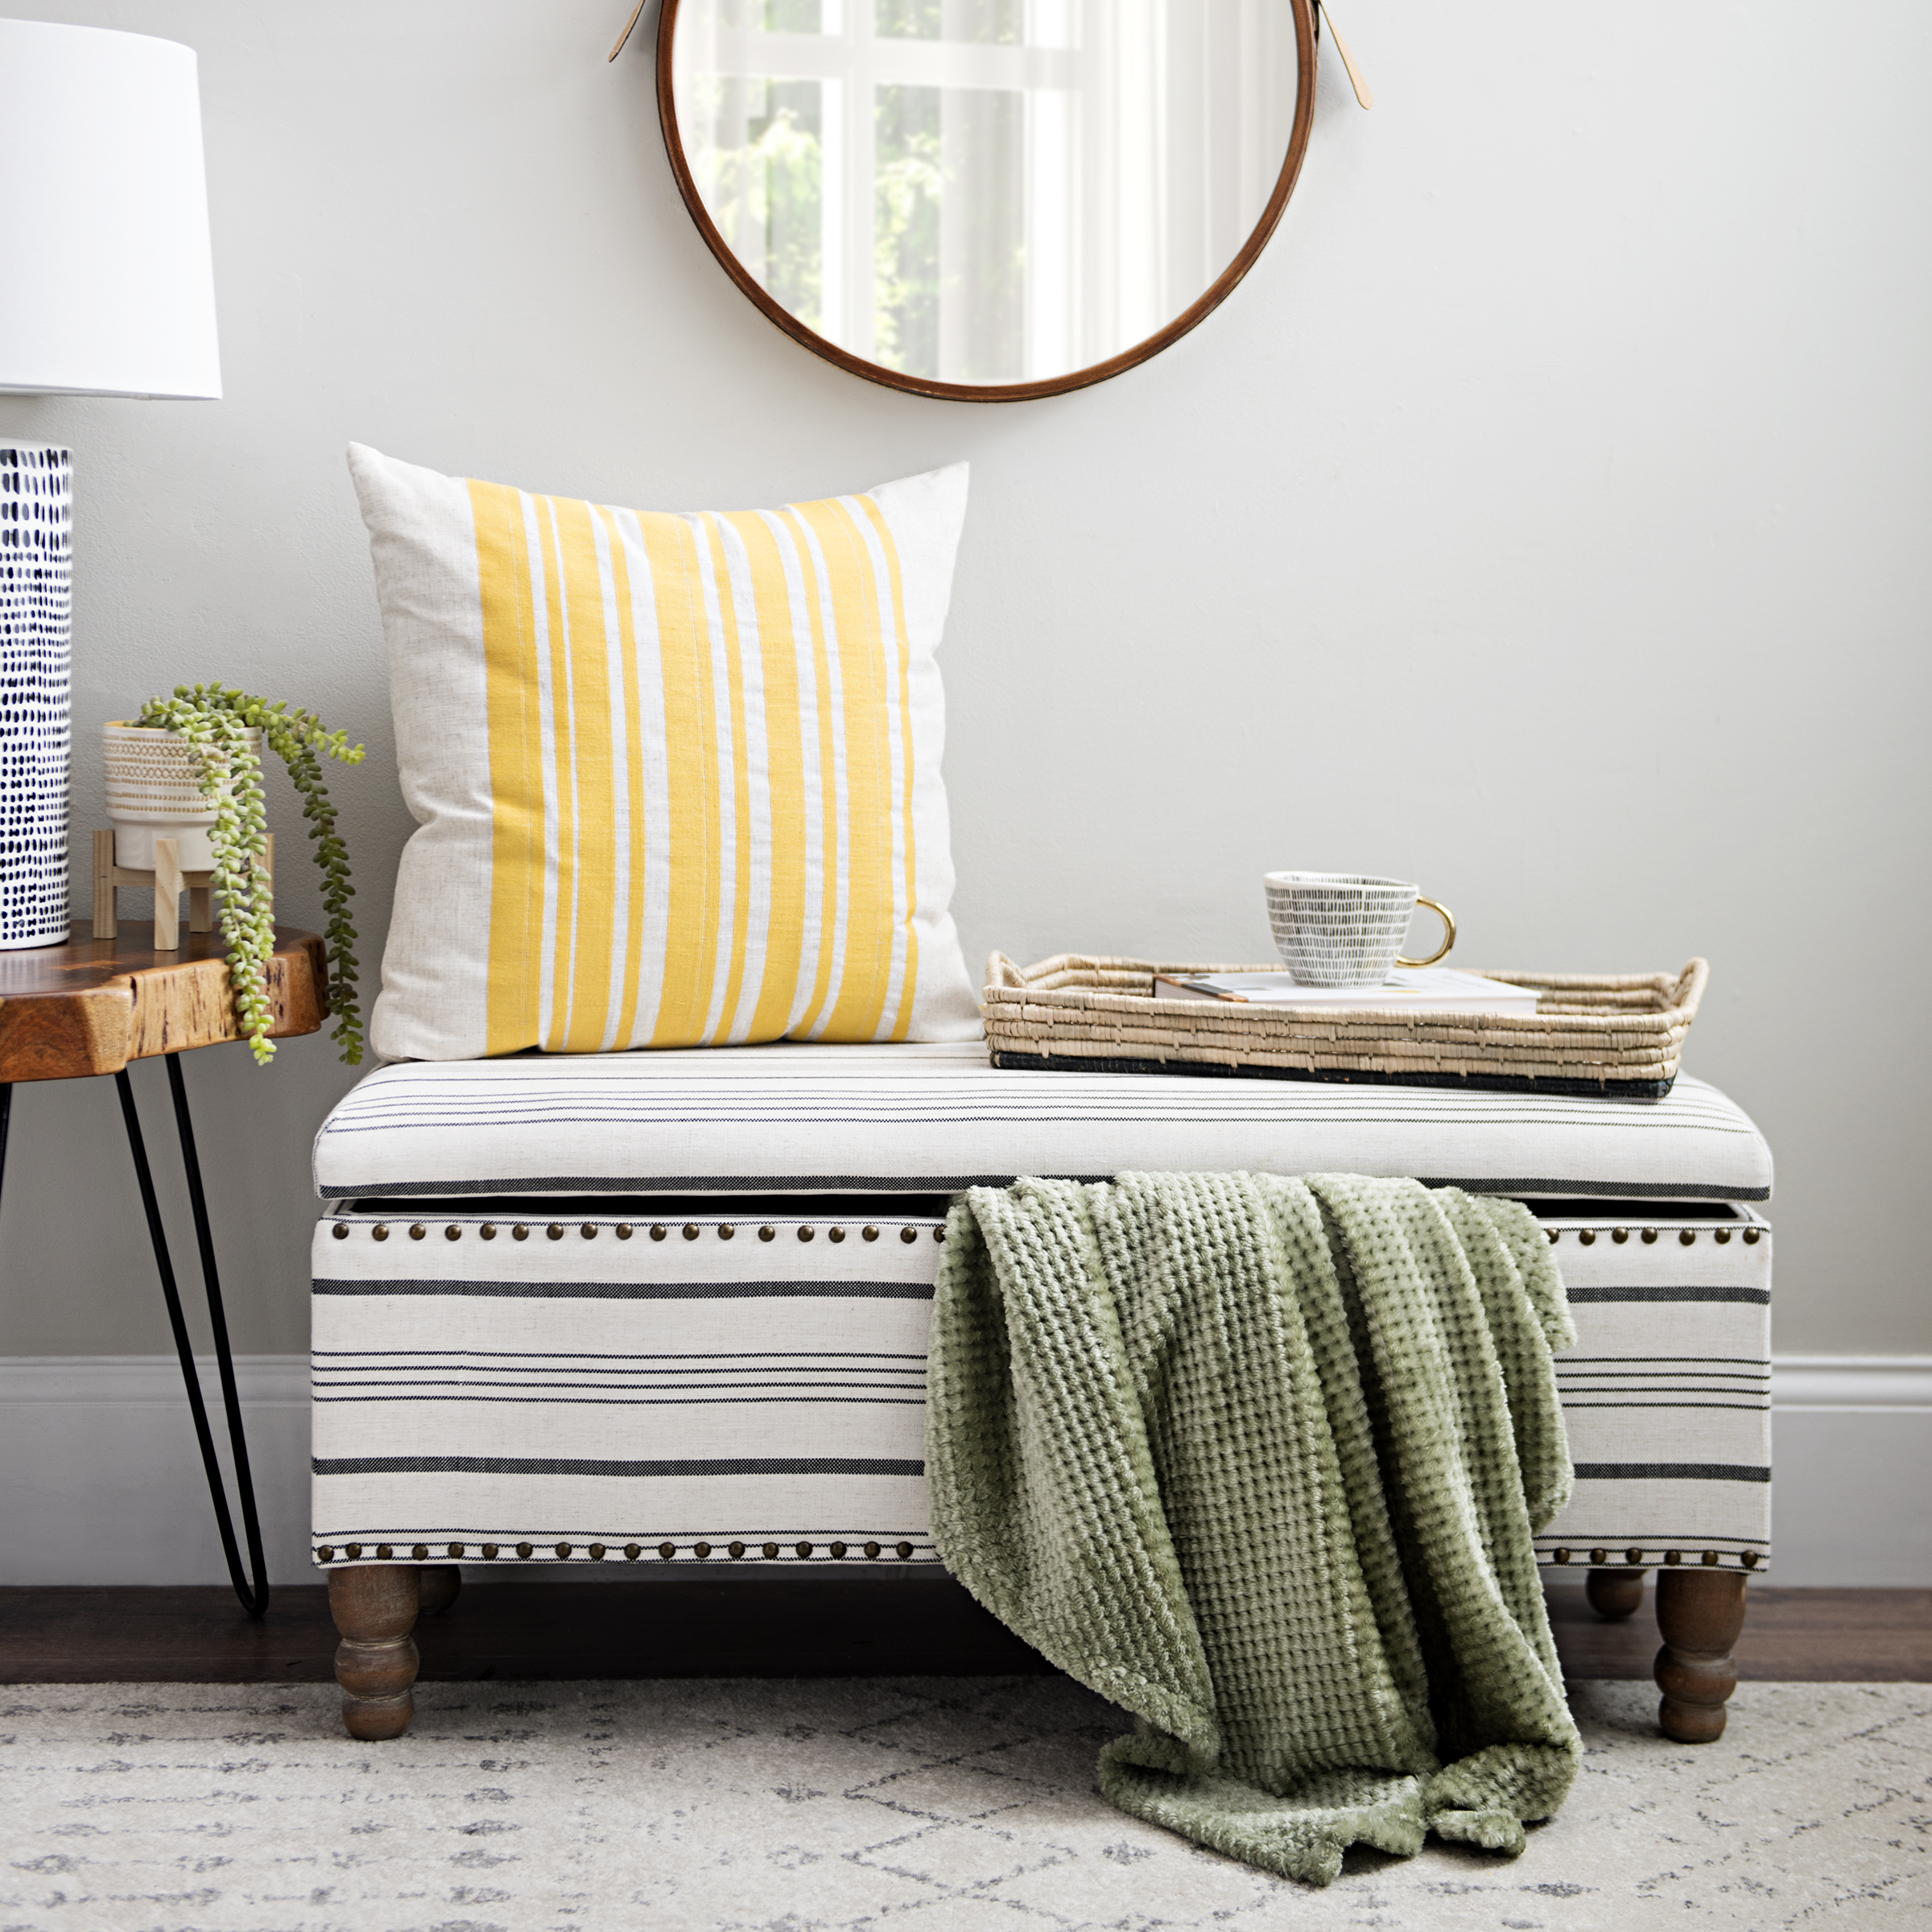 Kirkland's - Black and White Striped Storage Bench